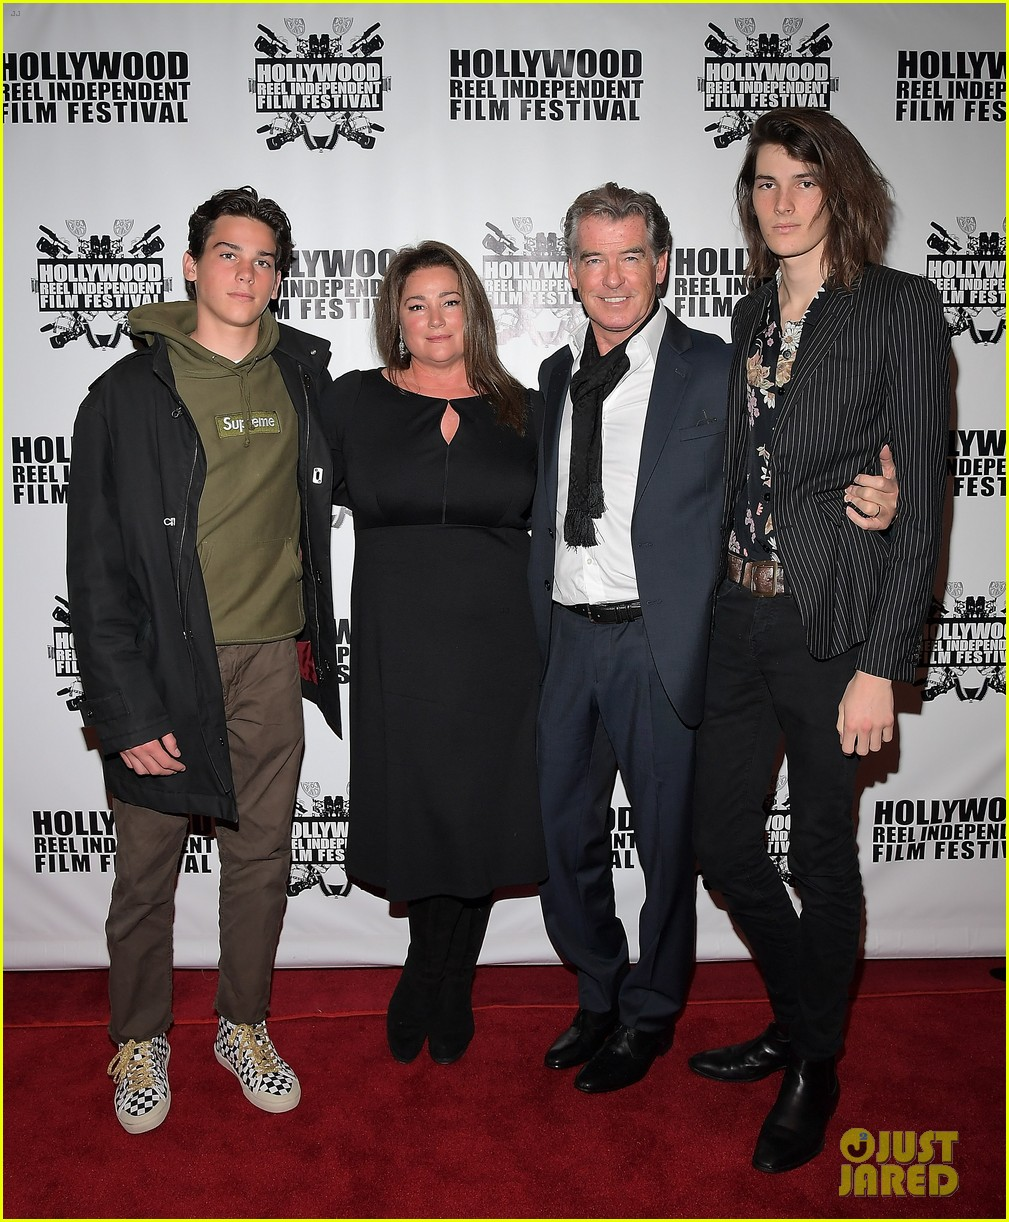 pierce brosnan brings the whole family to hollywood reel independent film fest 053862089